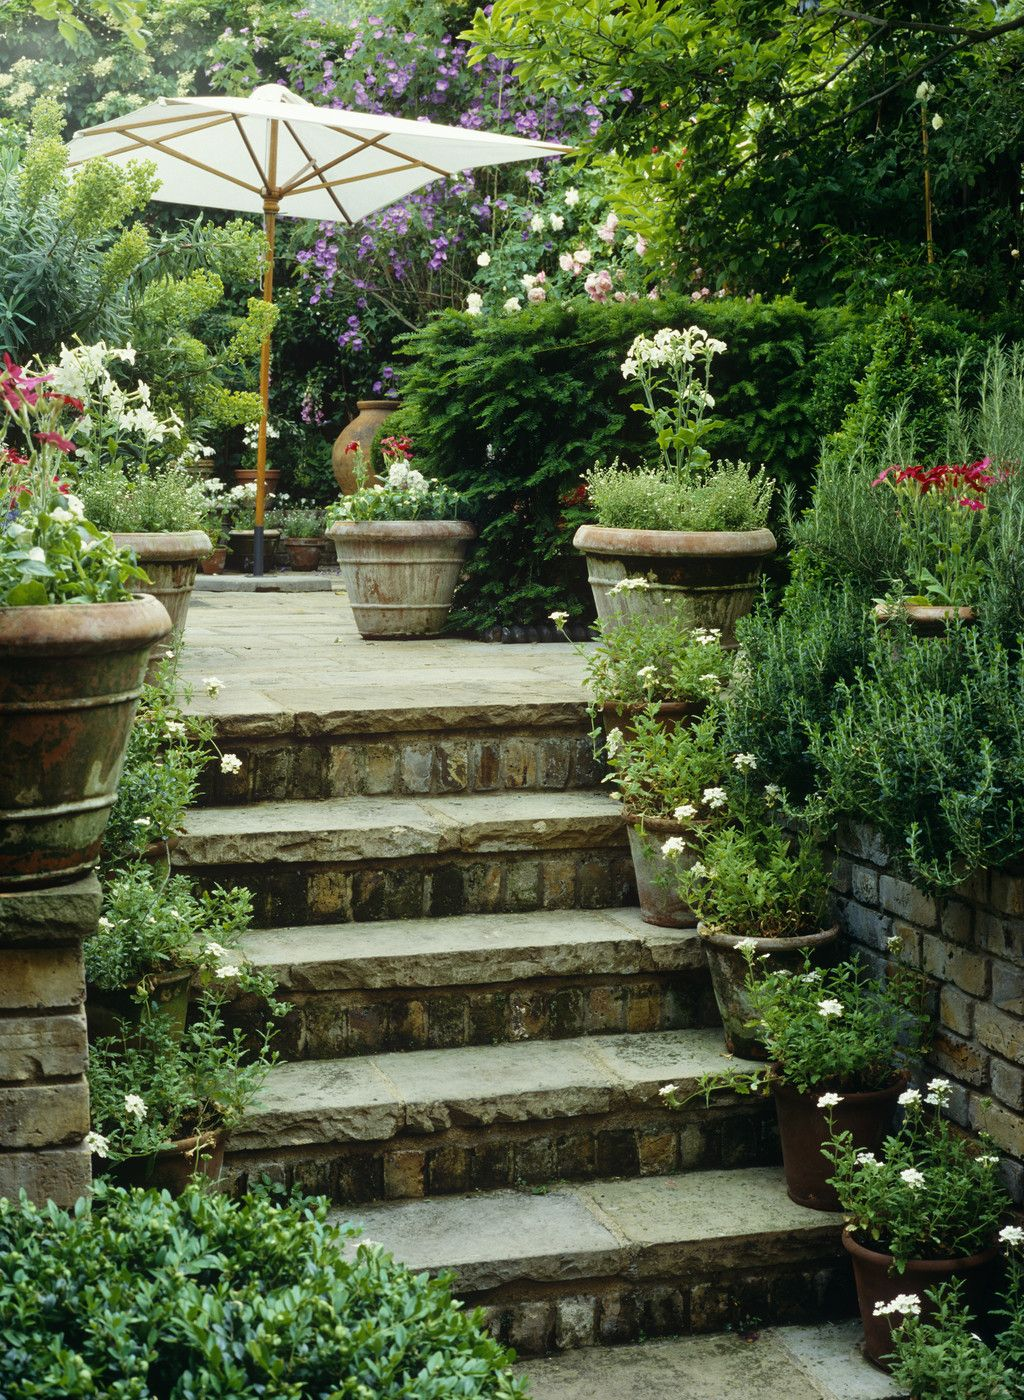 Potted Garden Lining The Stairs. And Beautiful Stone Steps!